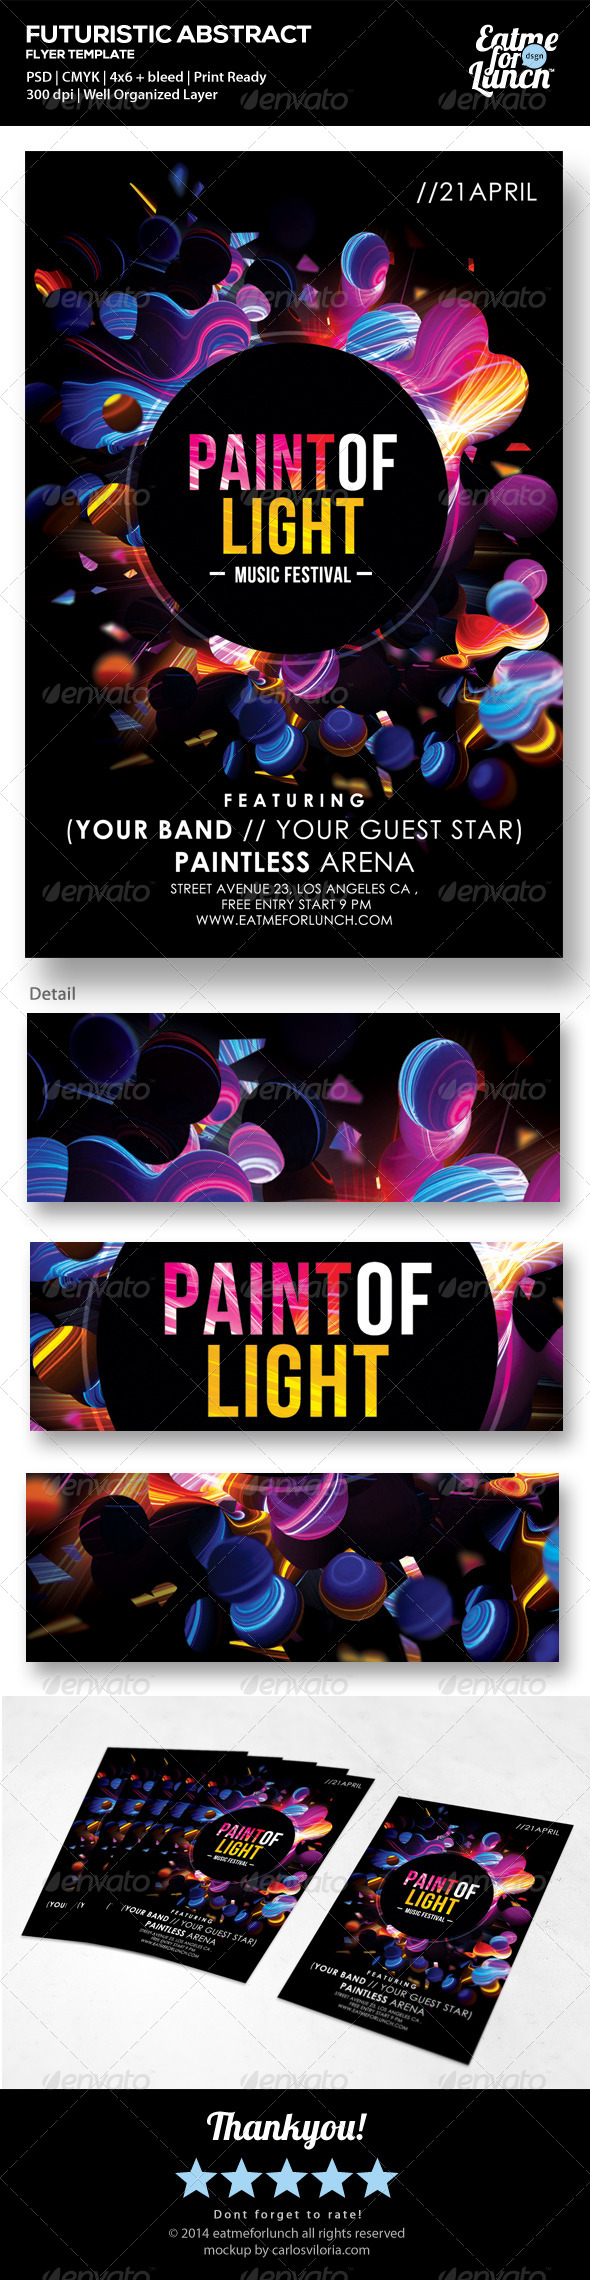 GraphicRiver Futuristic Abstract Flyer Paint of Light 7369803